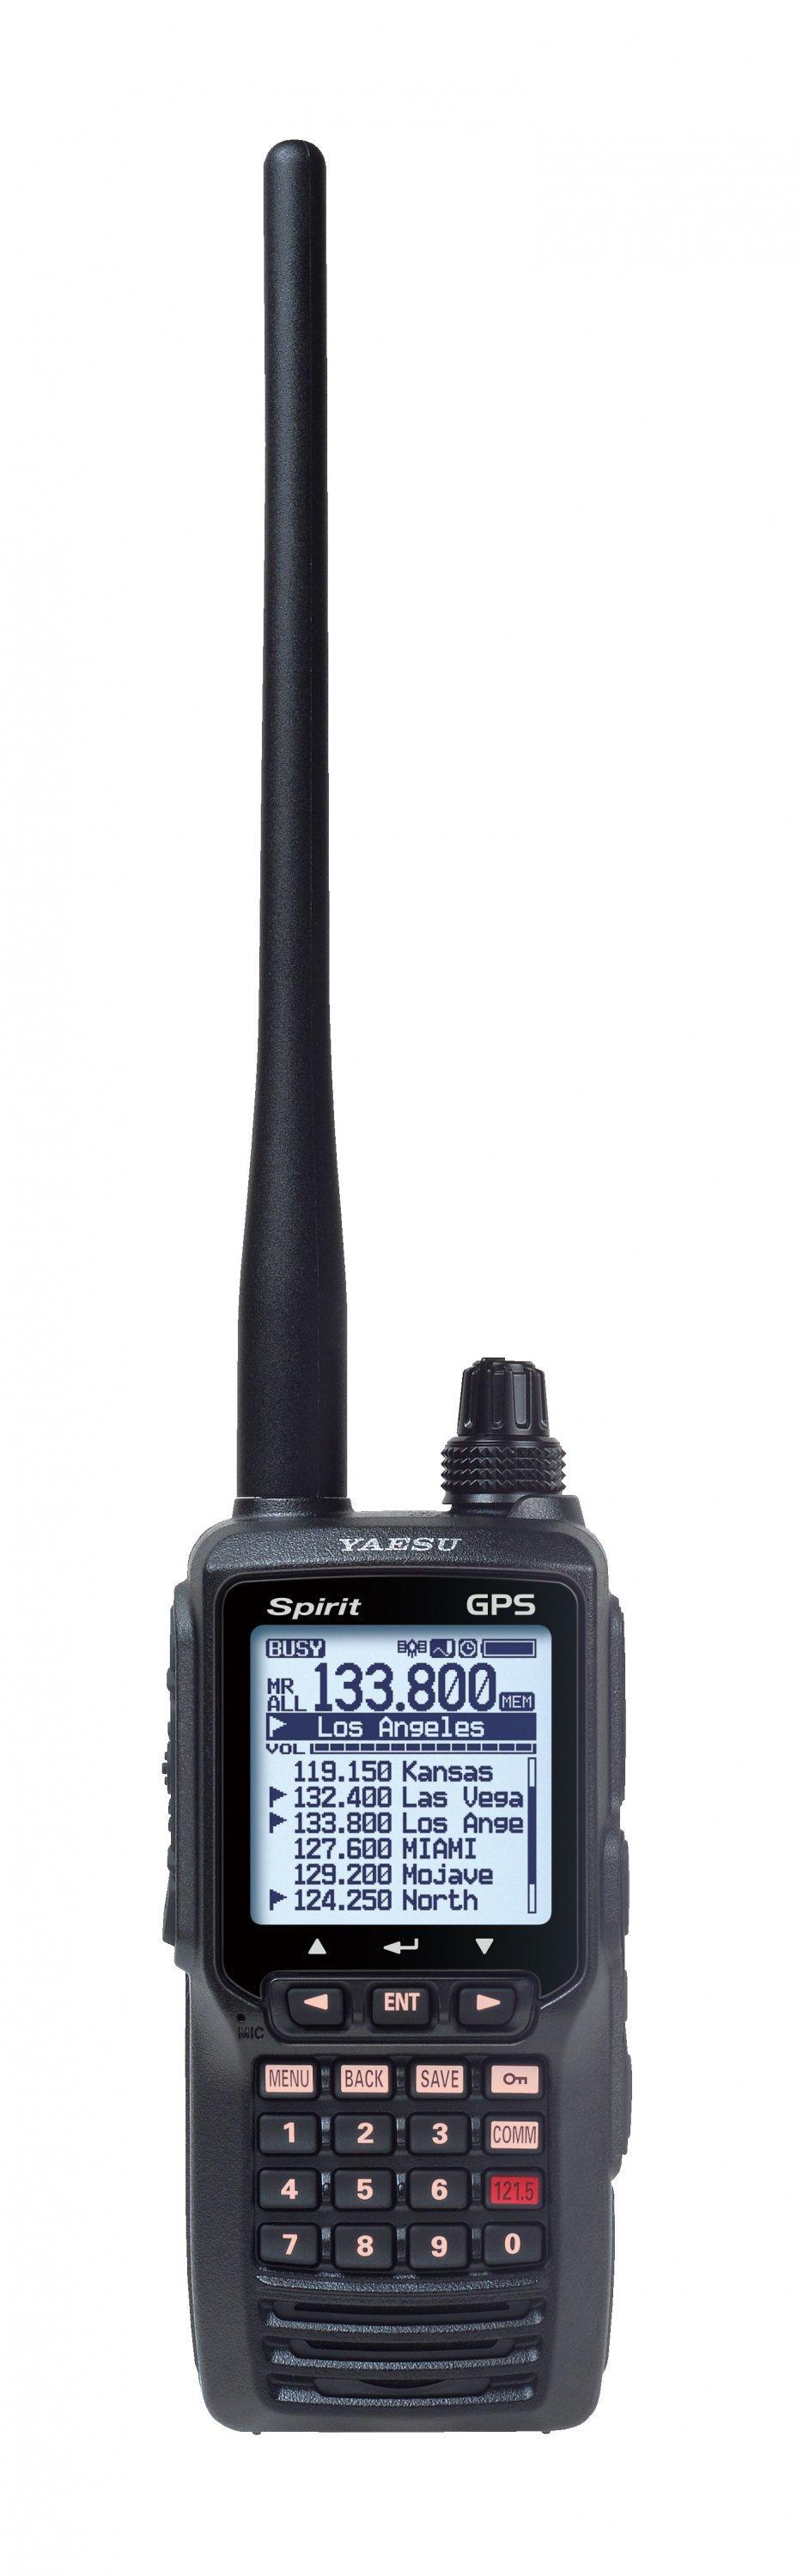 Yaesu FTA-750L Airband Transceiver with Integral GPS